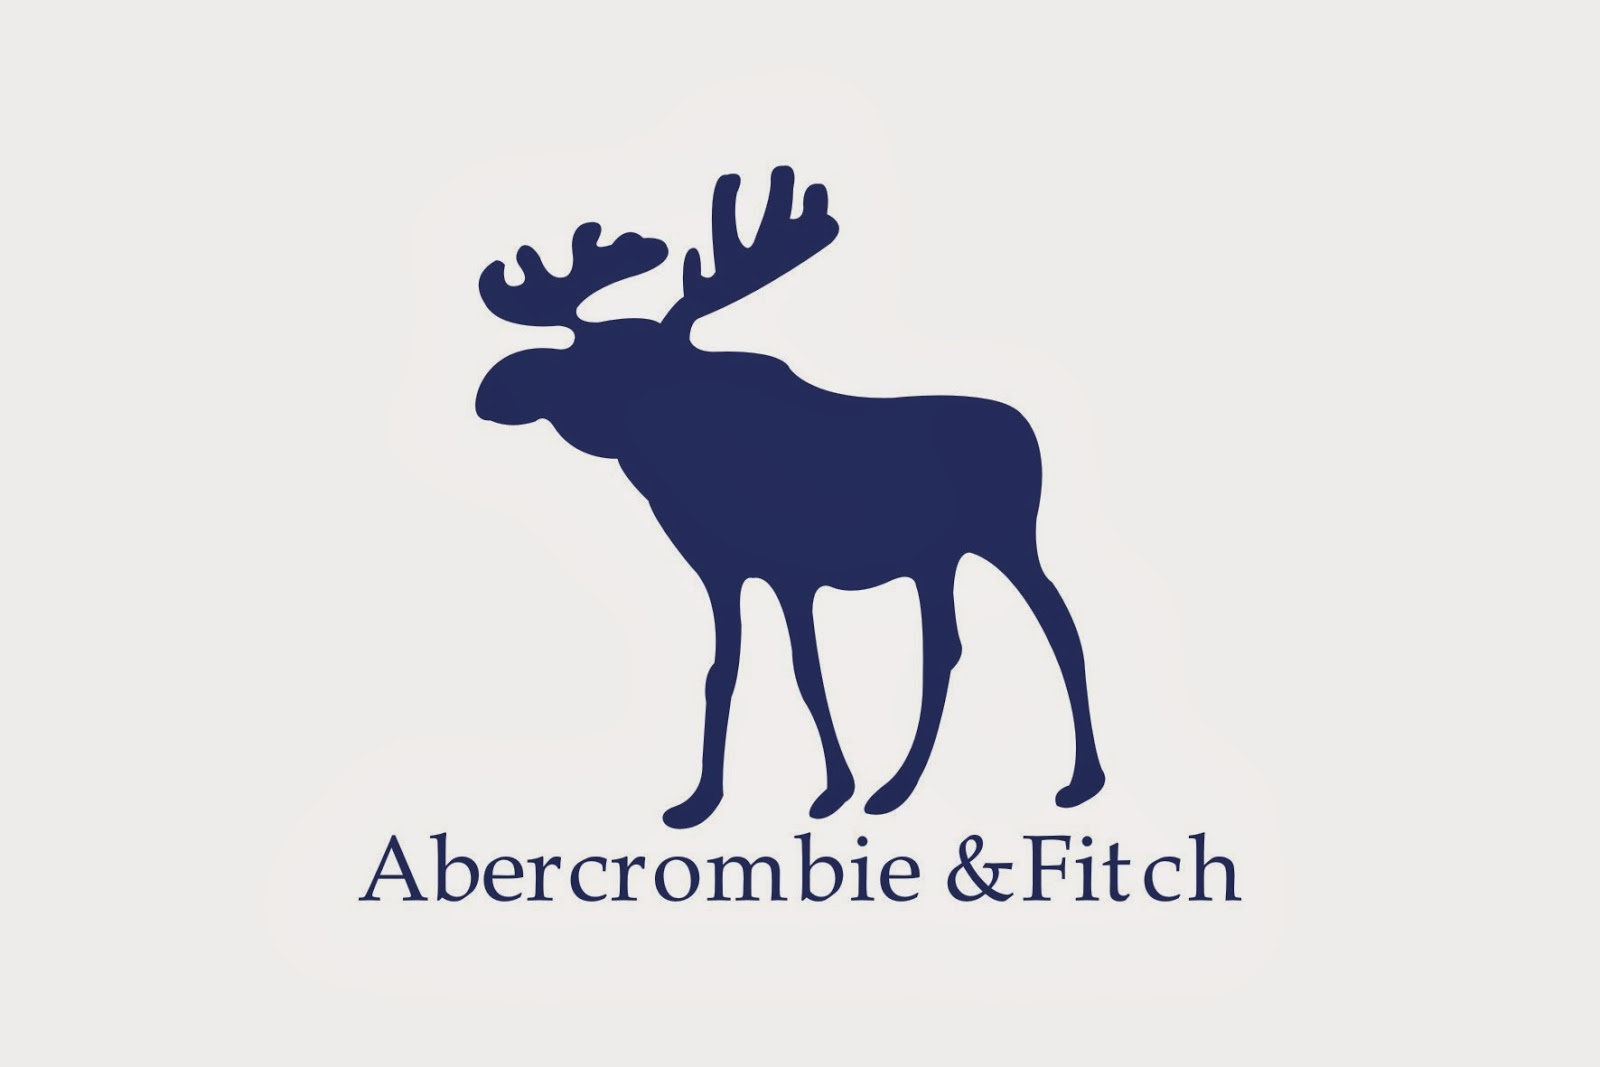 Teen retailer Abercrombie & Fitch doesn't stock XL or XXL sizes in women's clothing because they don't want overweight women wearing their brand. They want the